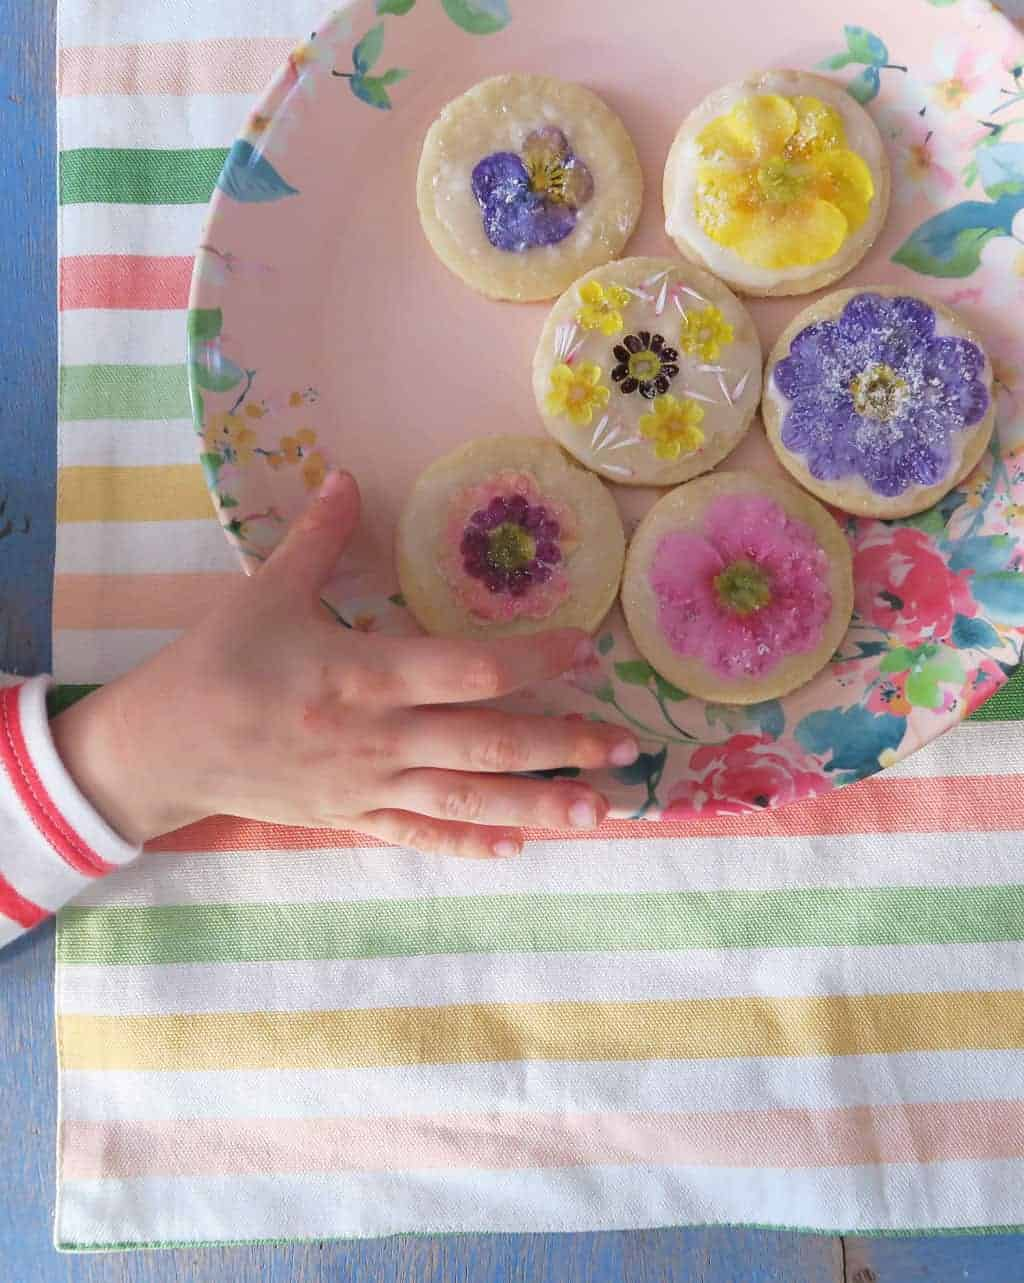 Edible flower biscuits on a floral melamine plate